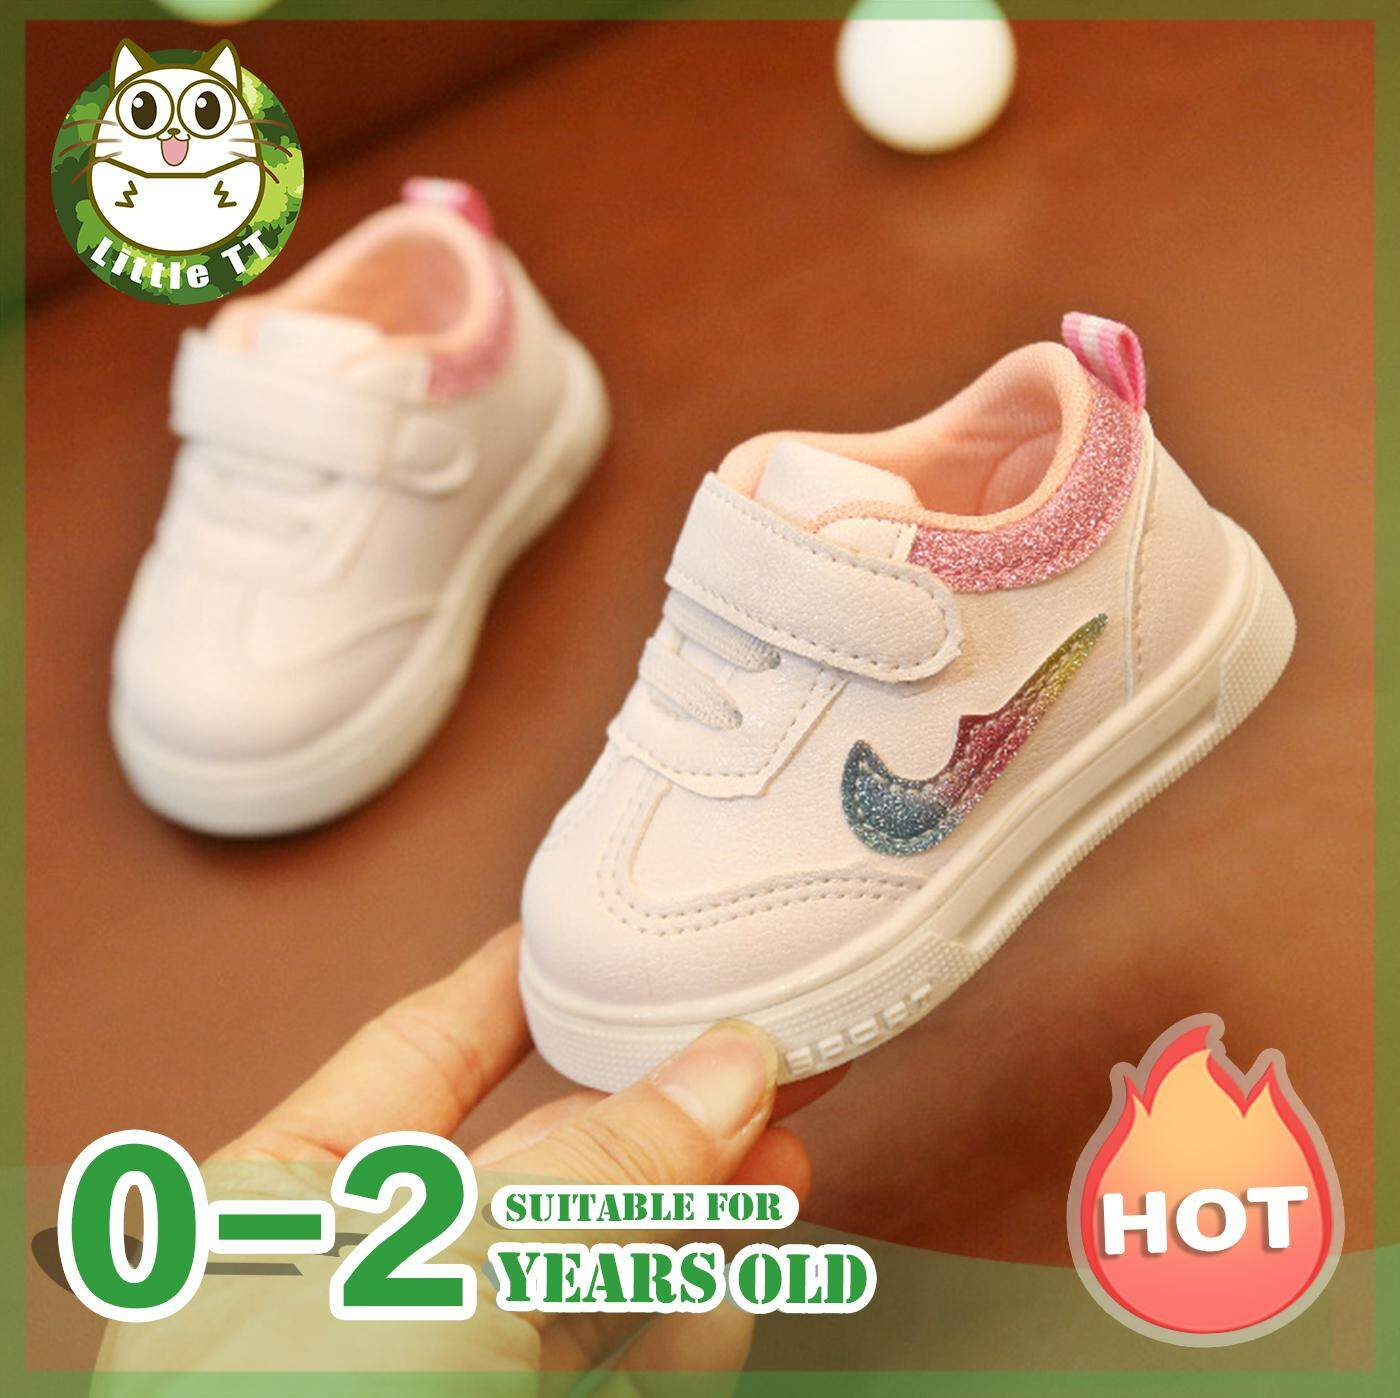 5913e6a7c79 Little TT Sneakers. Baby Boys Girls Casual Non-slip Sneakers Kids Sports  Shoes Girls